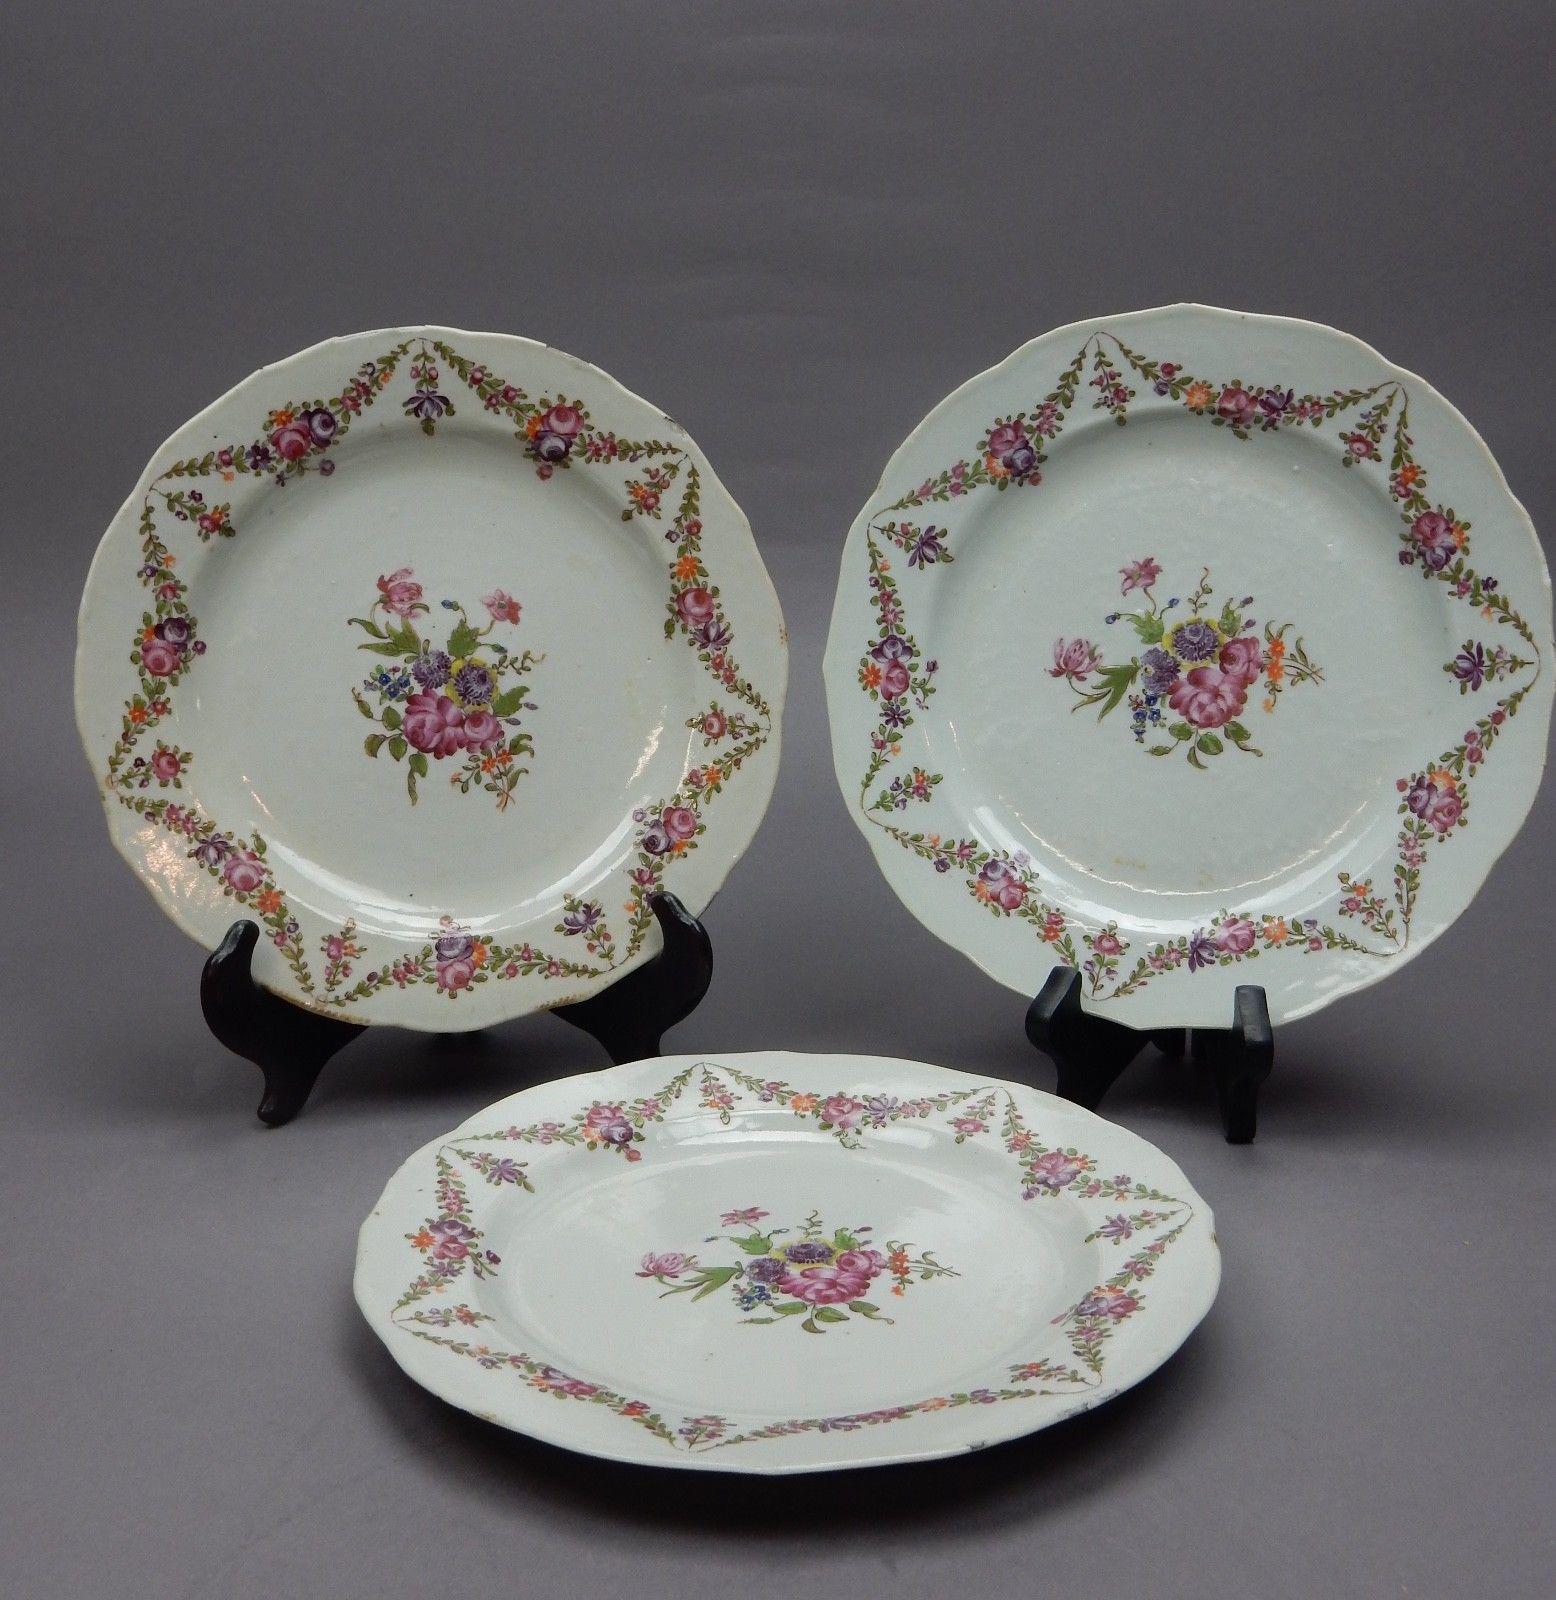 Antique Chinese Famille Rose Plates - Set of 3 - Image 10 of 11 & Antique Chinese Famille Rose Plates - Set of 3 | Chairish